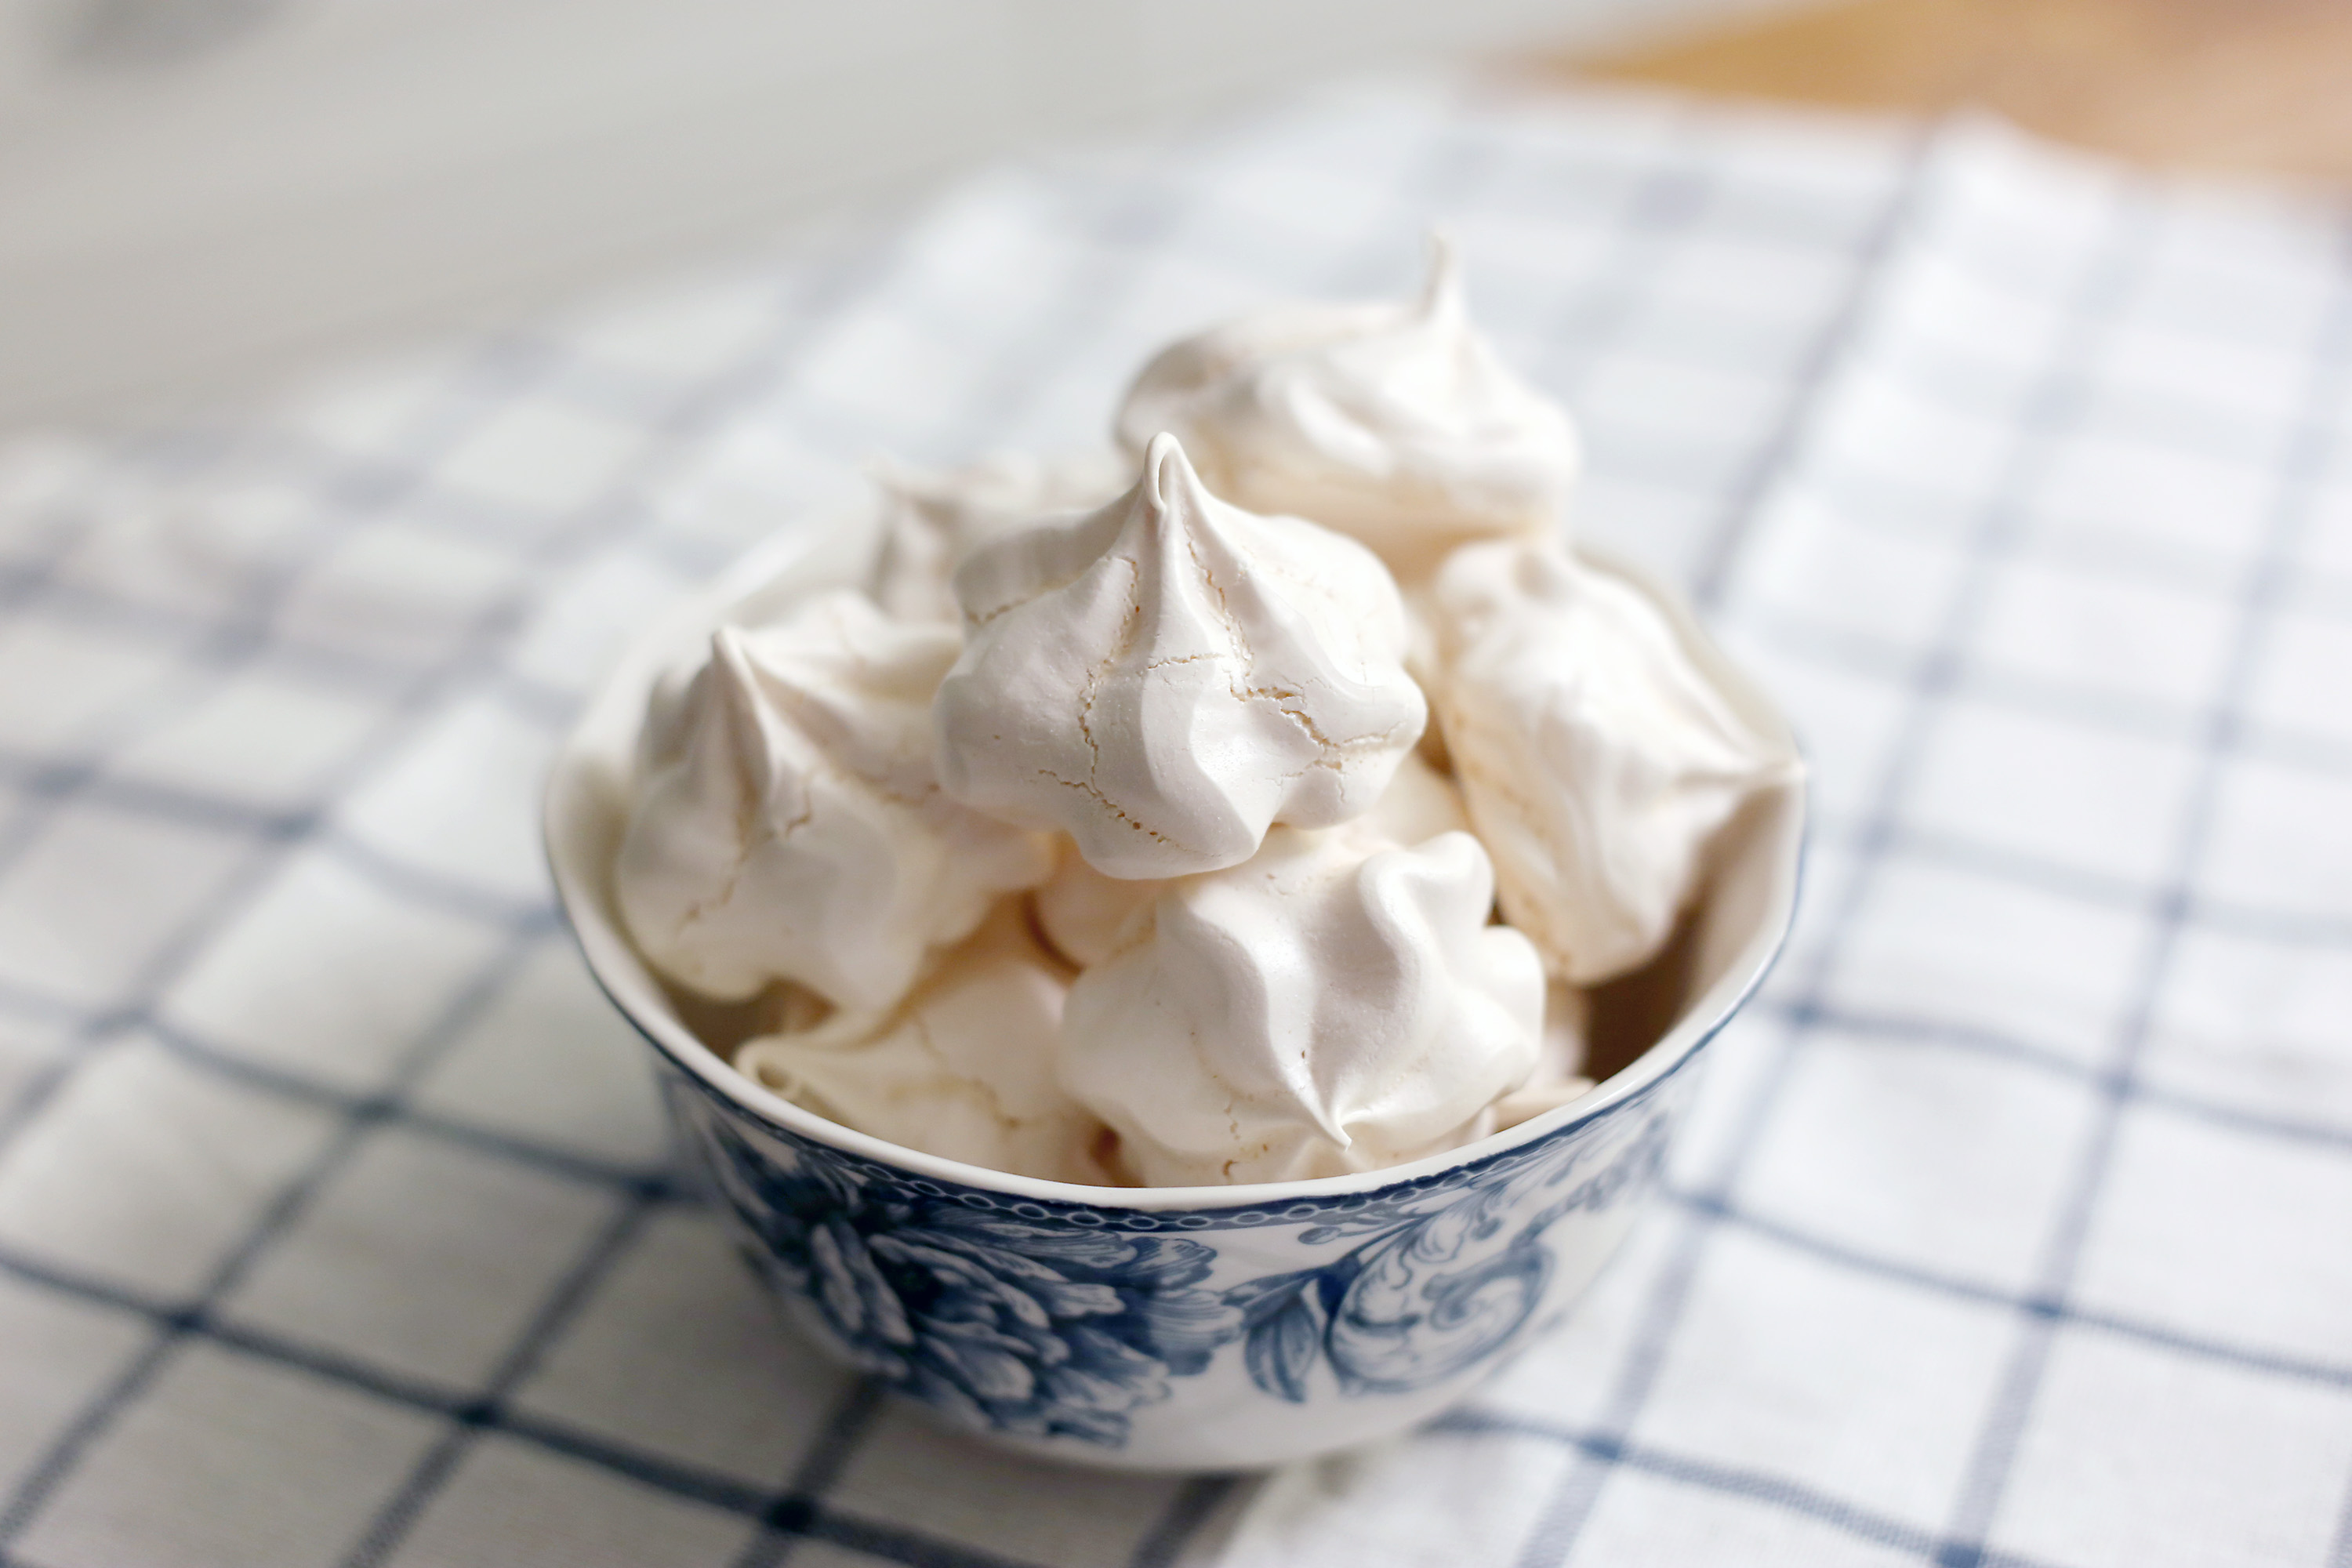 How to cook meringues